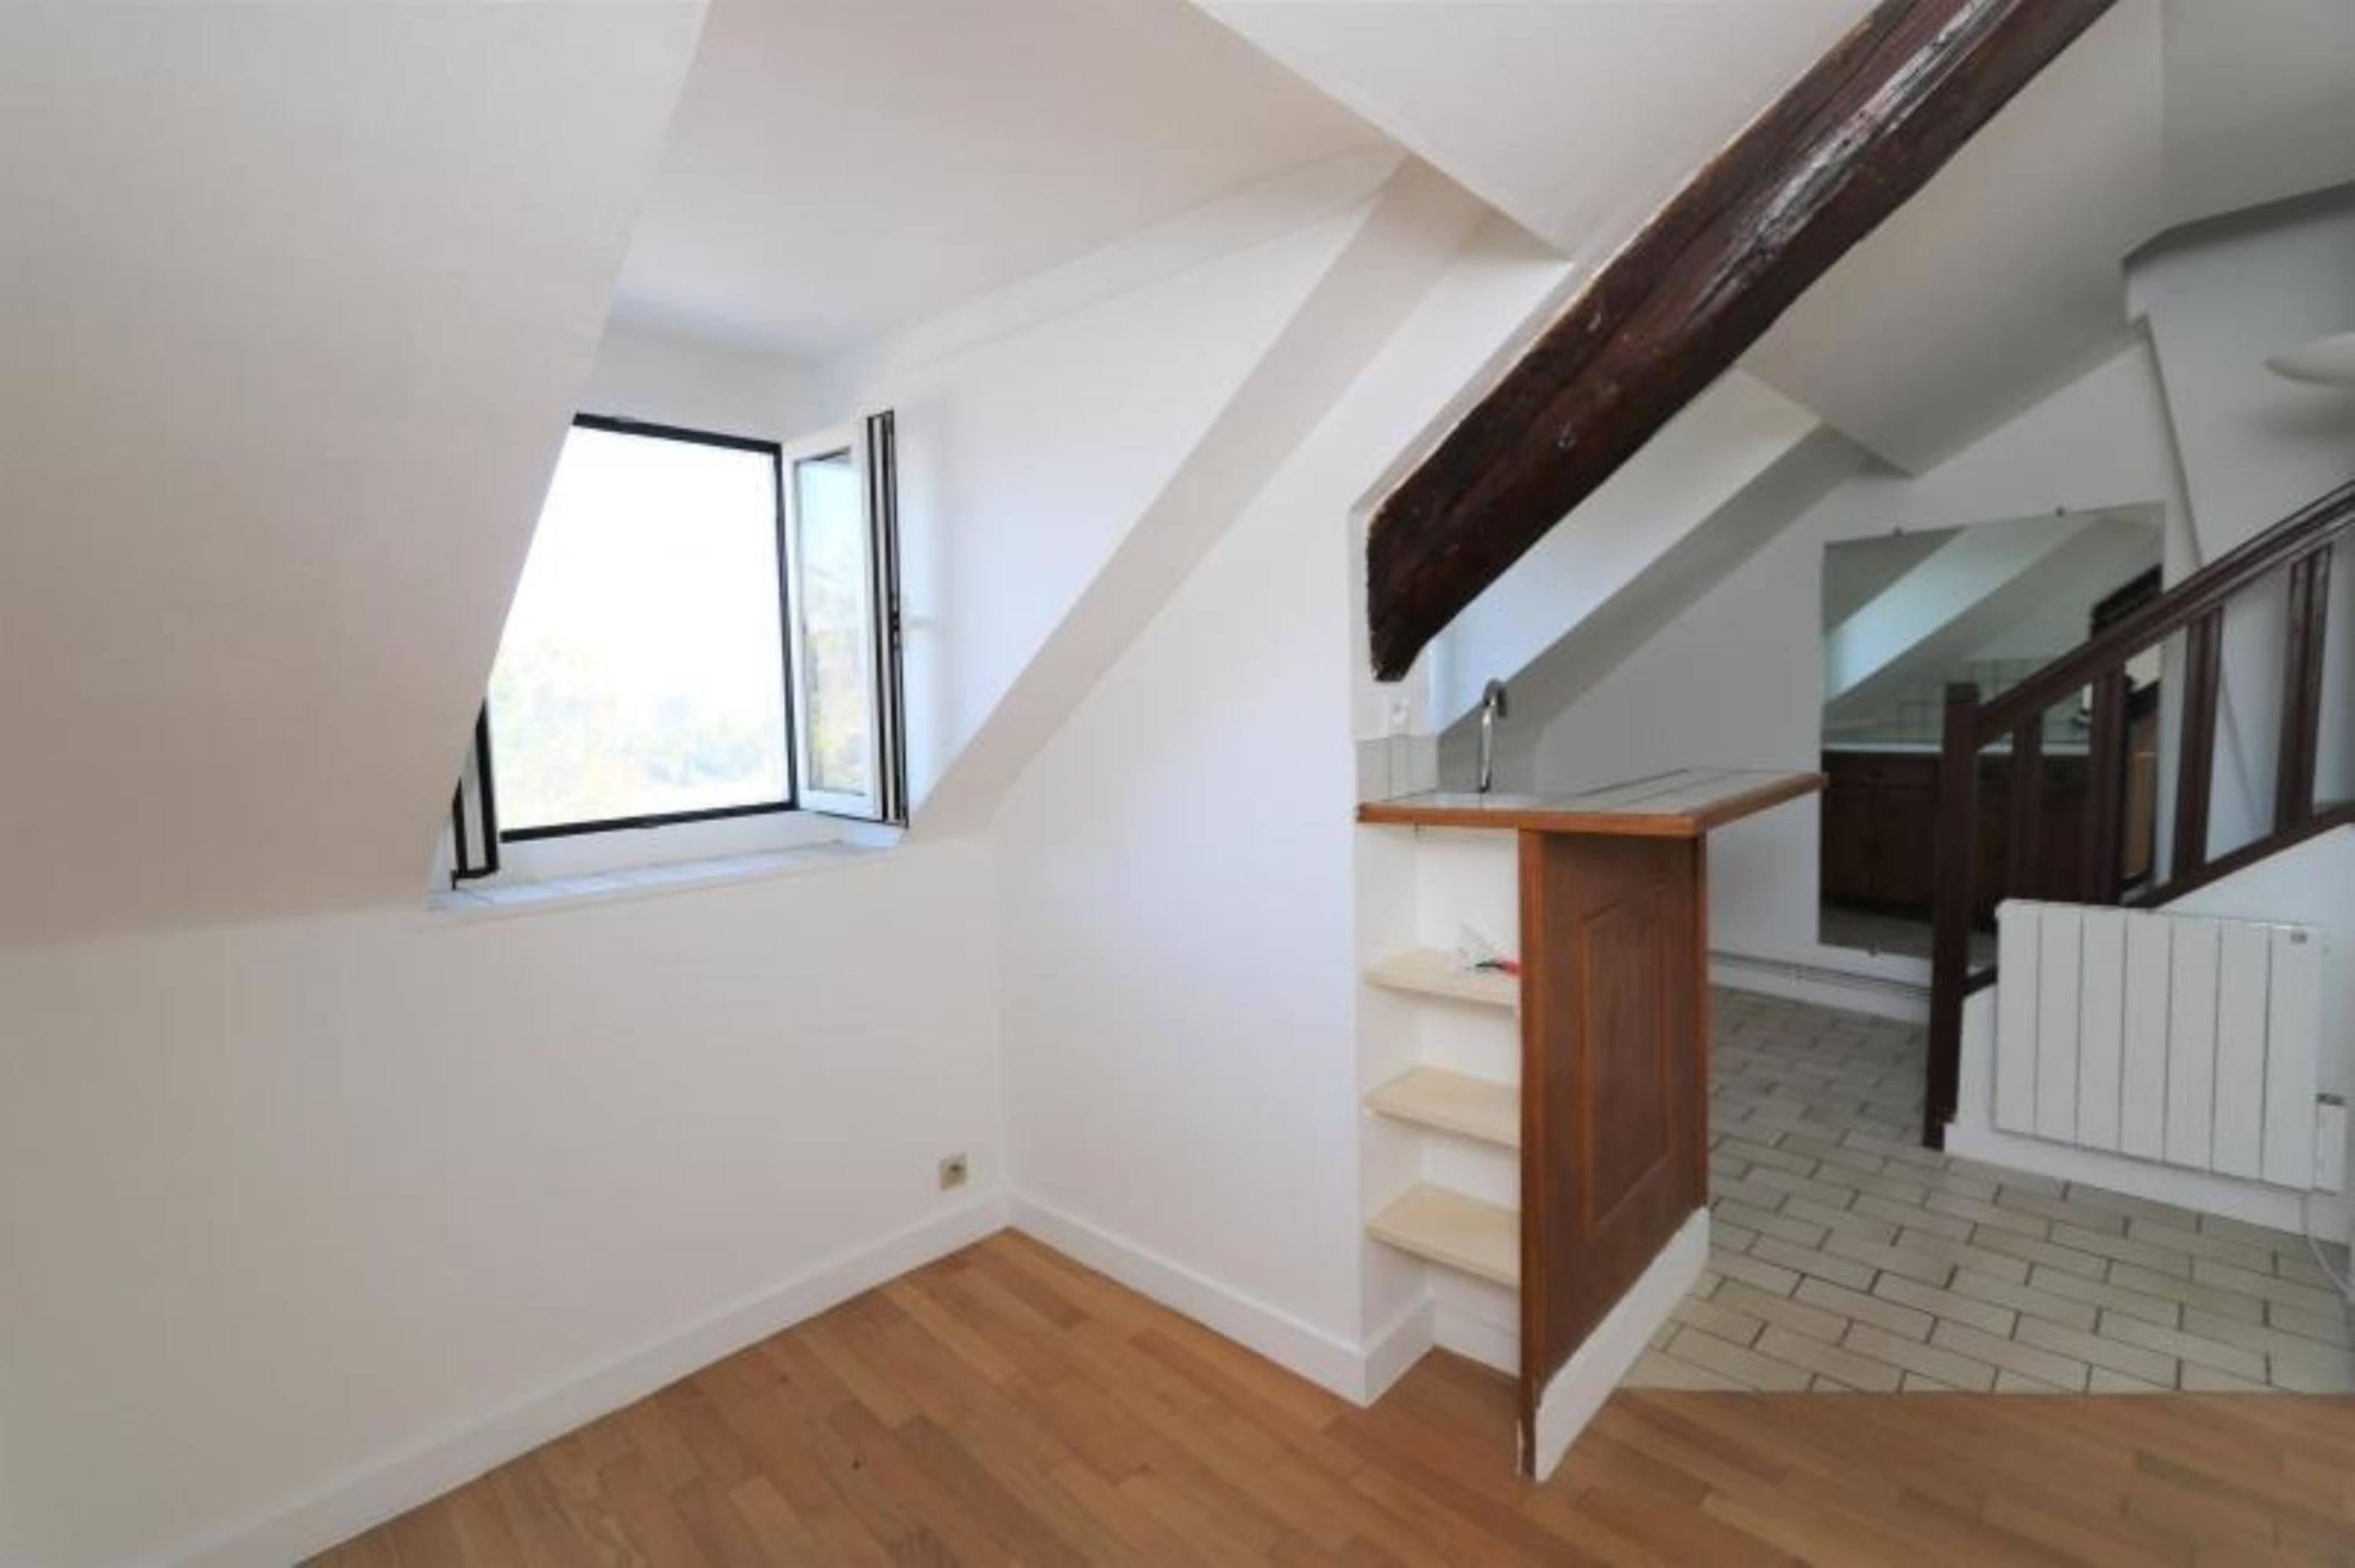 agence immobilière sevres 92 le chesnay 78 achat vente location appartement maison immobilier LMHT ANF VHNYTRDJ